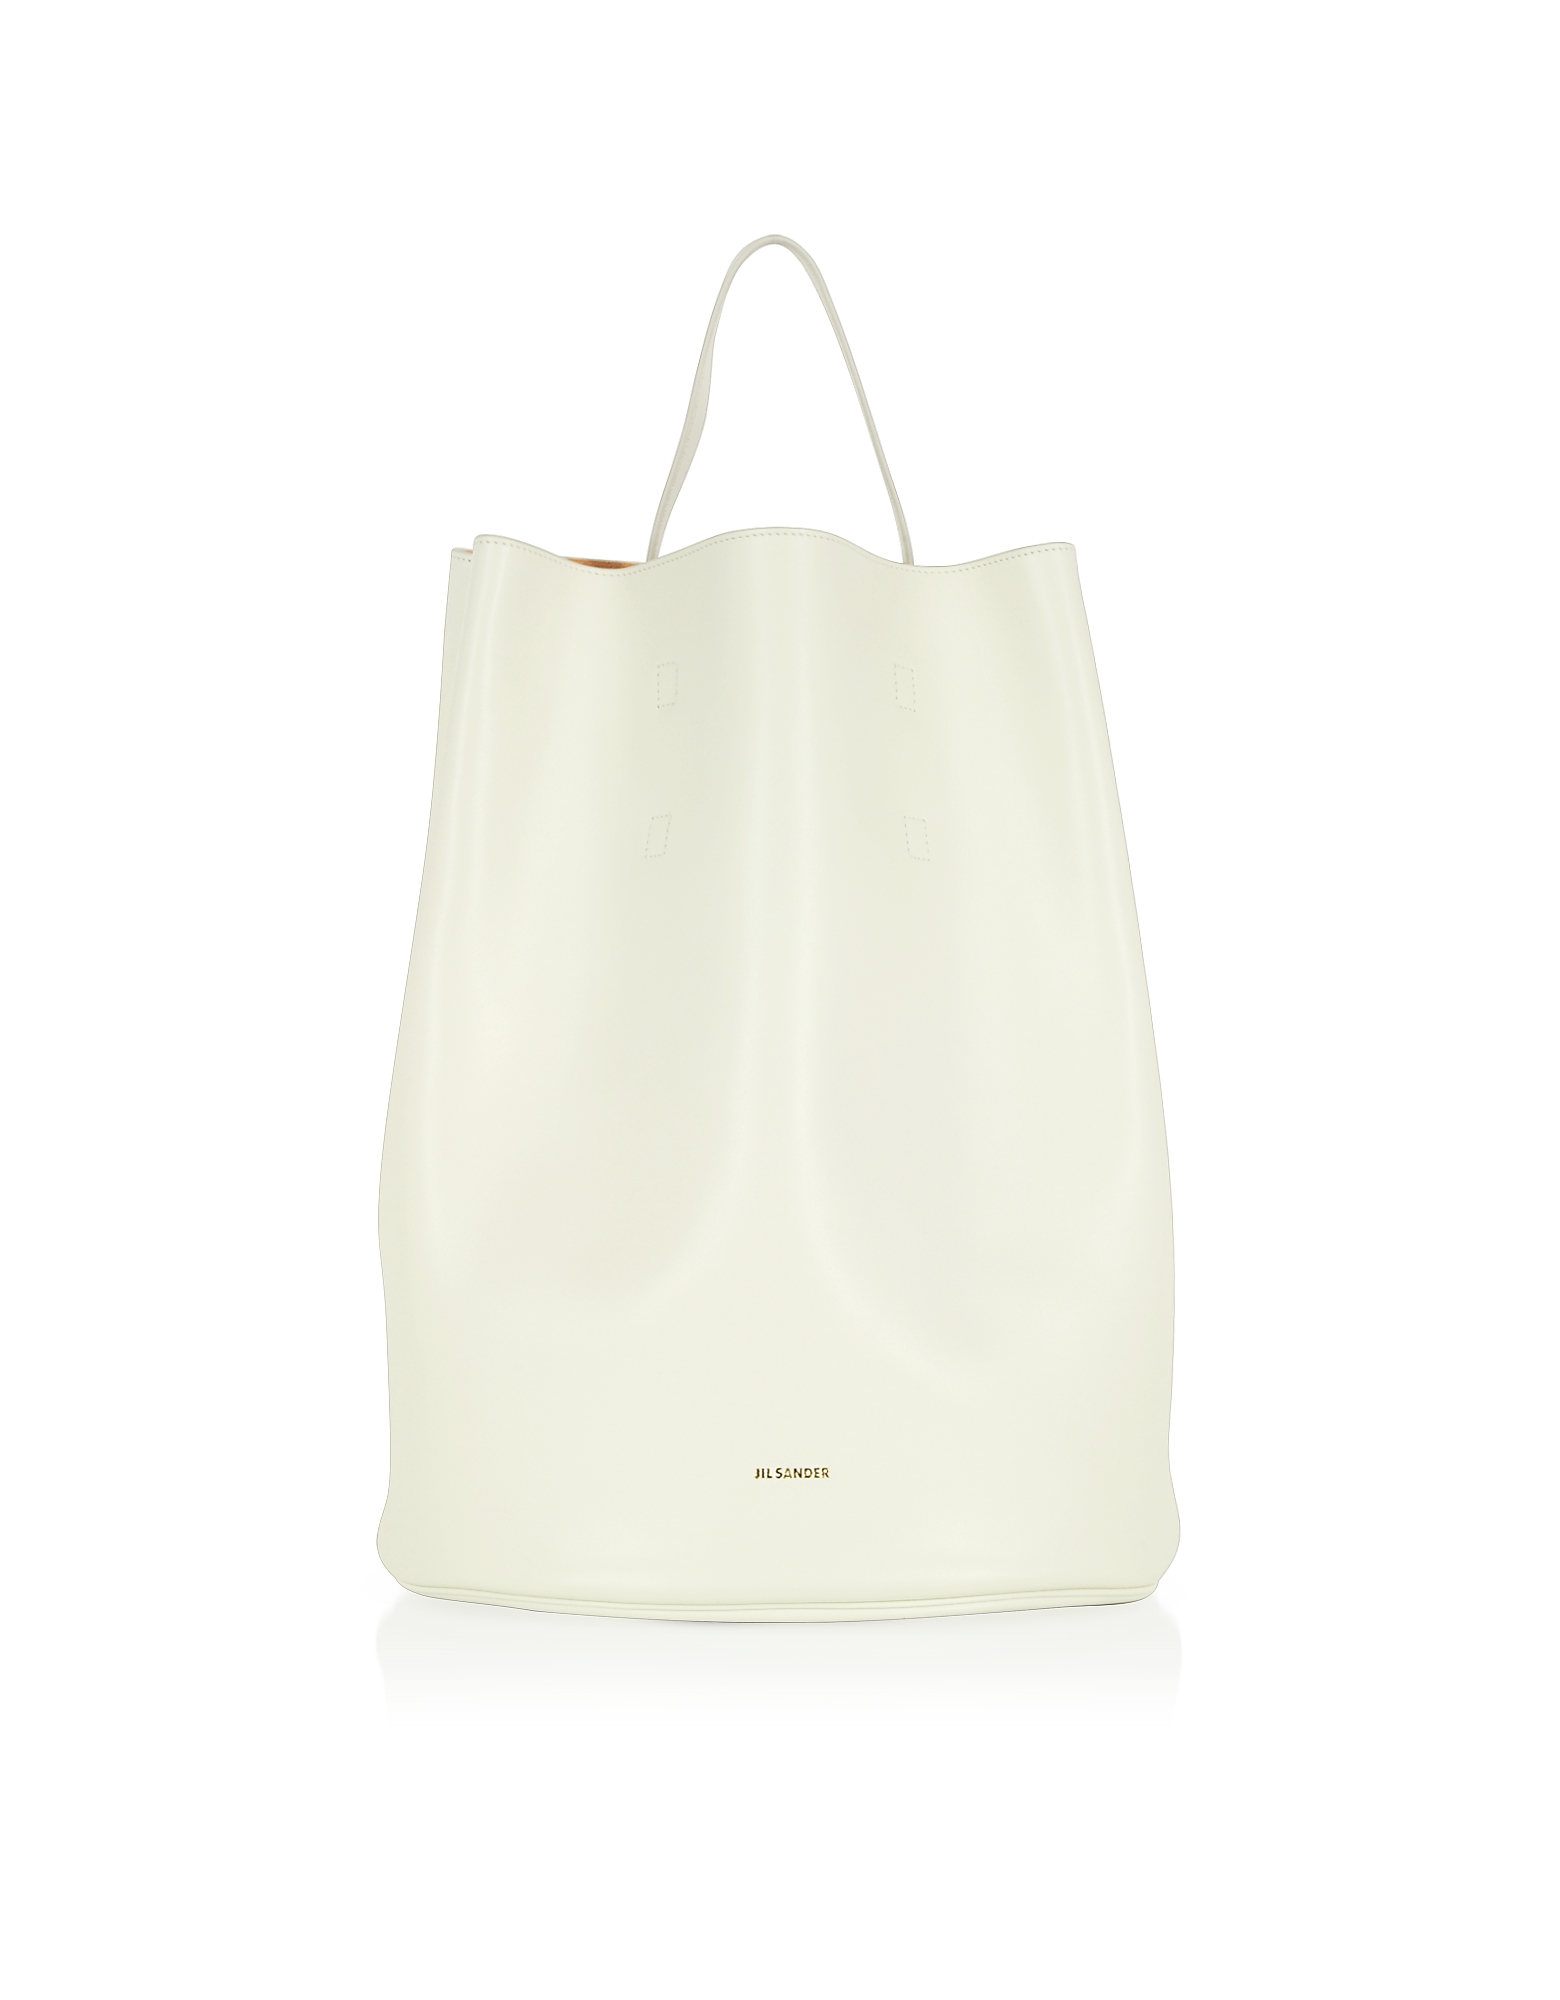 Jil Sander Handbags, Open White Leather Bucket Bag